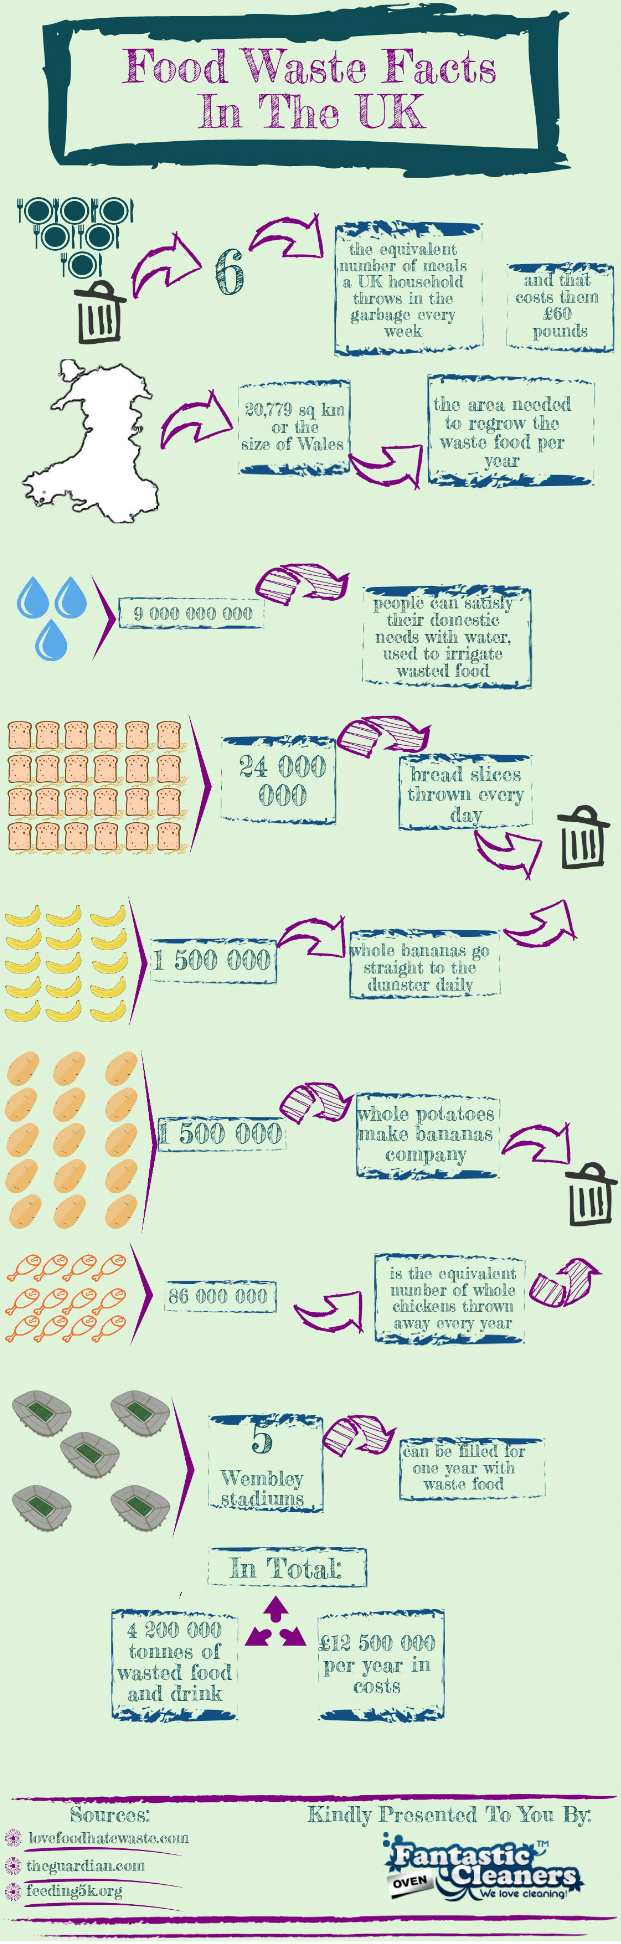 Food Waste Facts In United Kingdom 2 With Images Food Waste Food Infographic Food